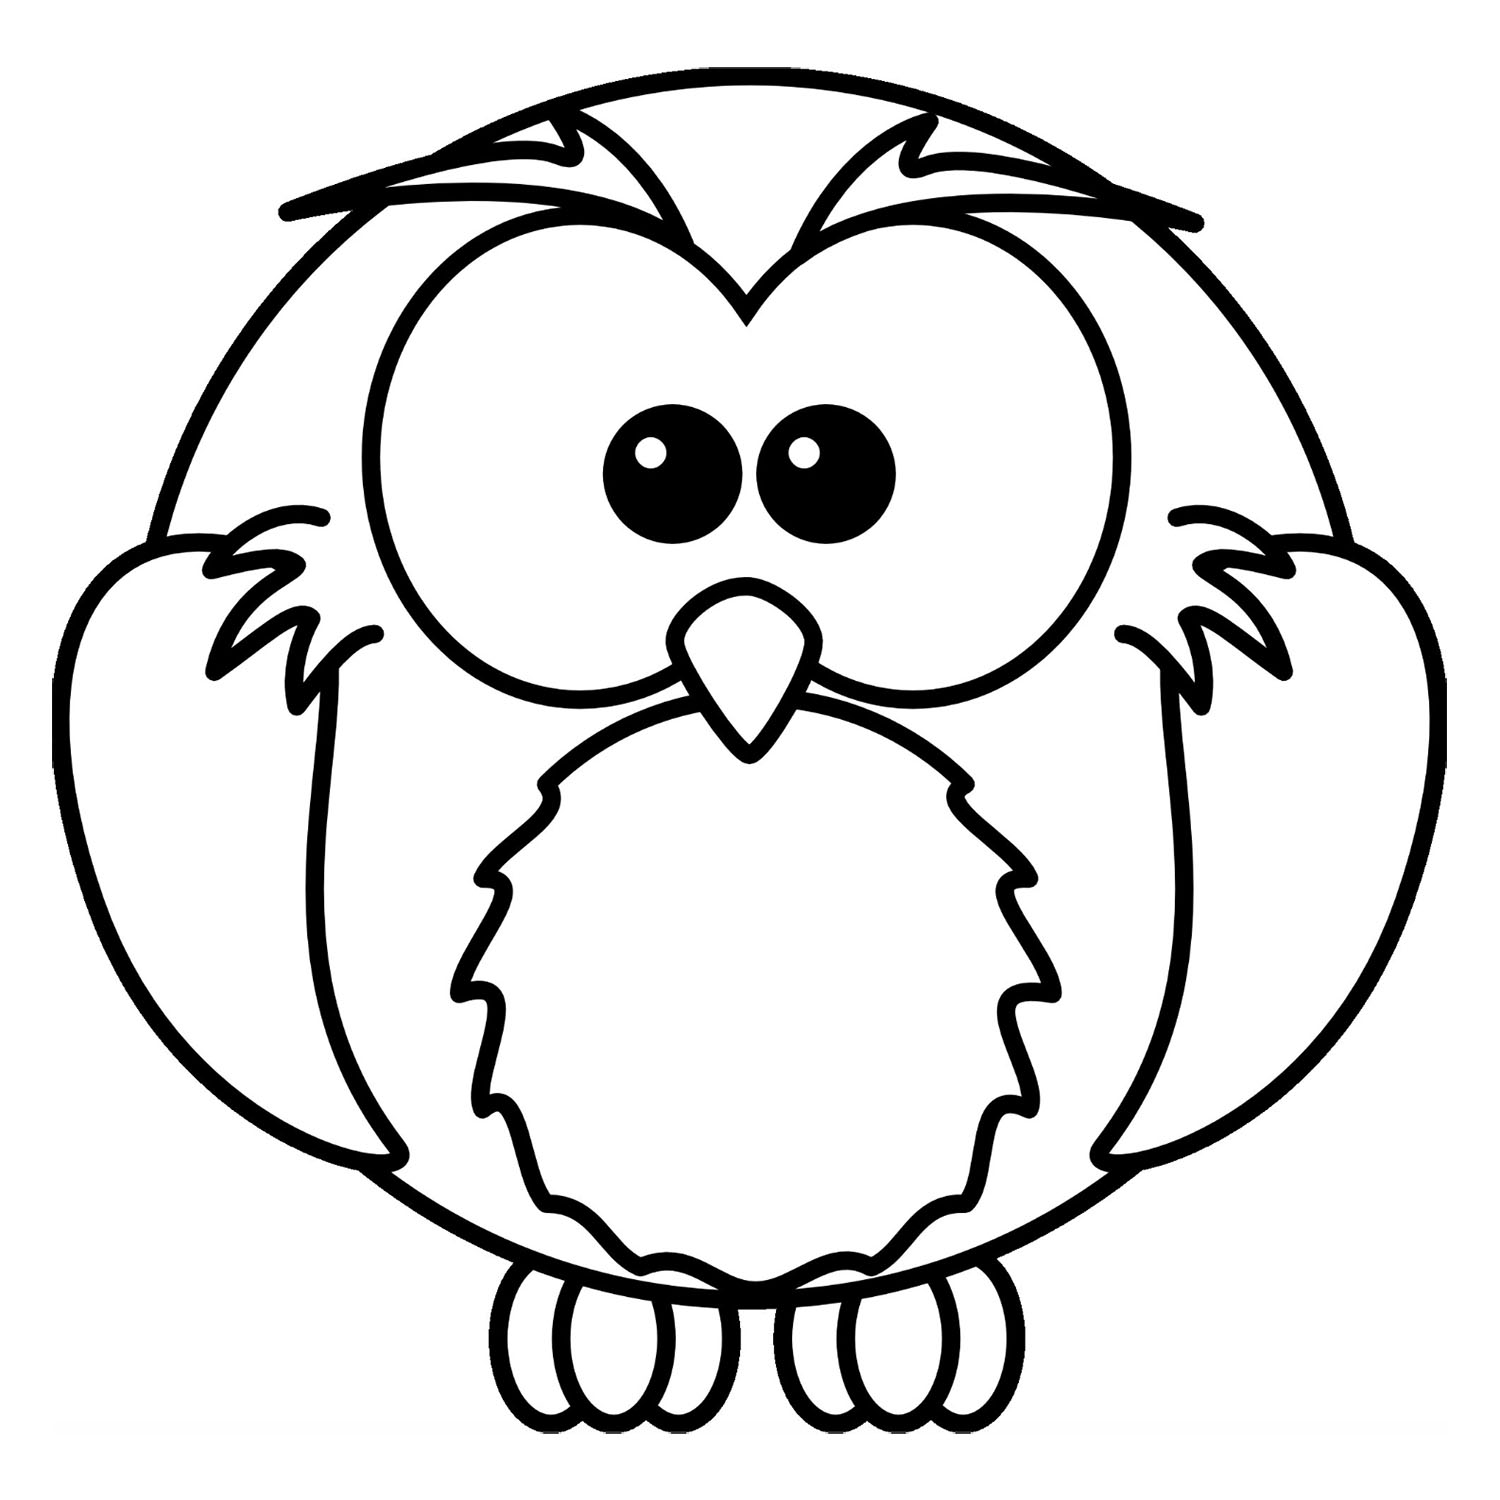 bird colouring pages for kids cute bird coloring pages bird for kids colouring pages